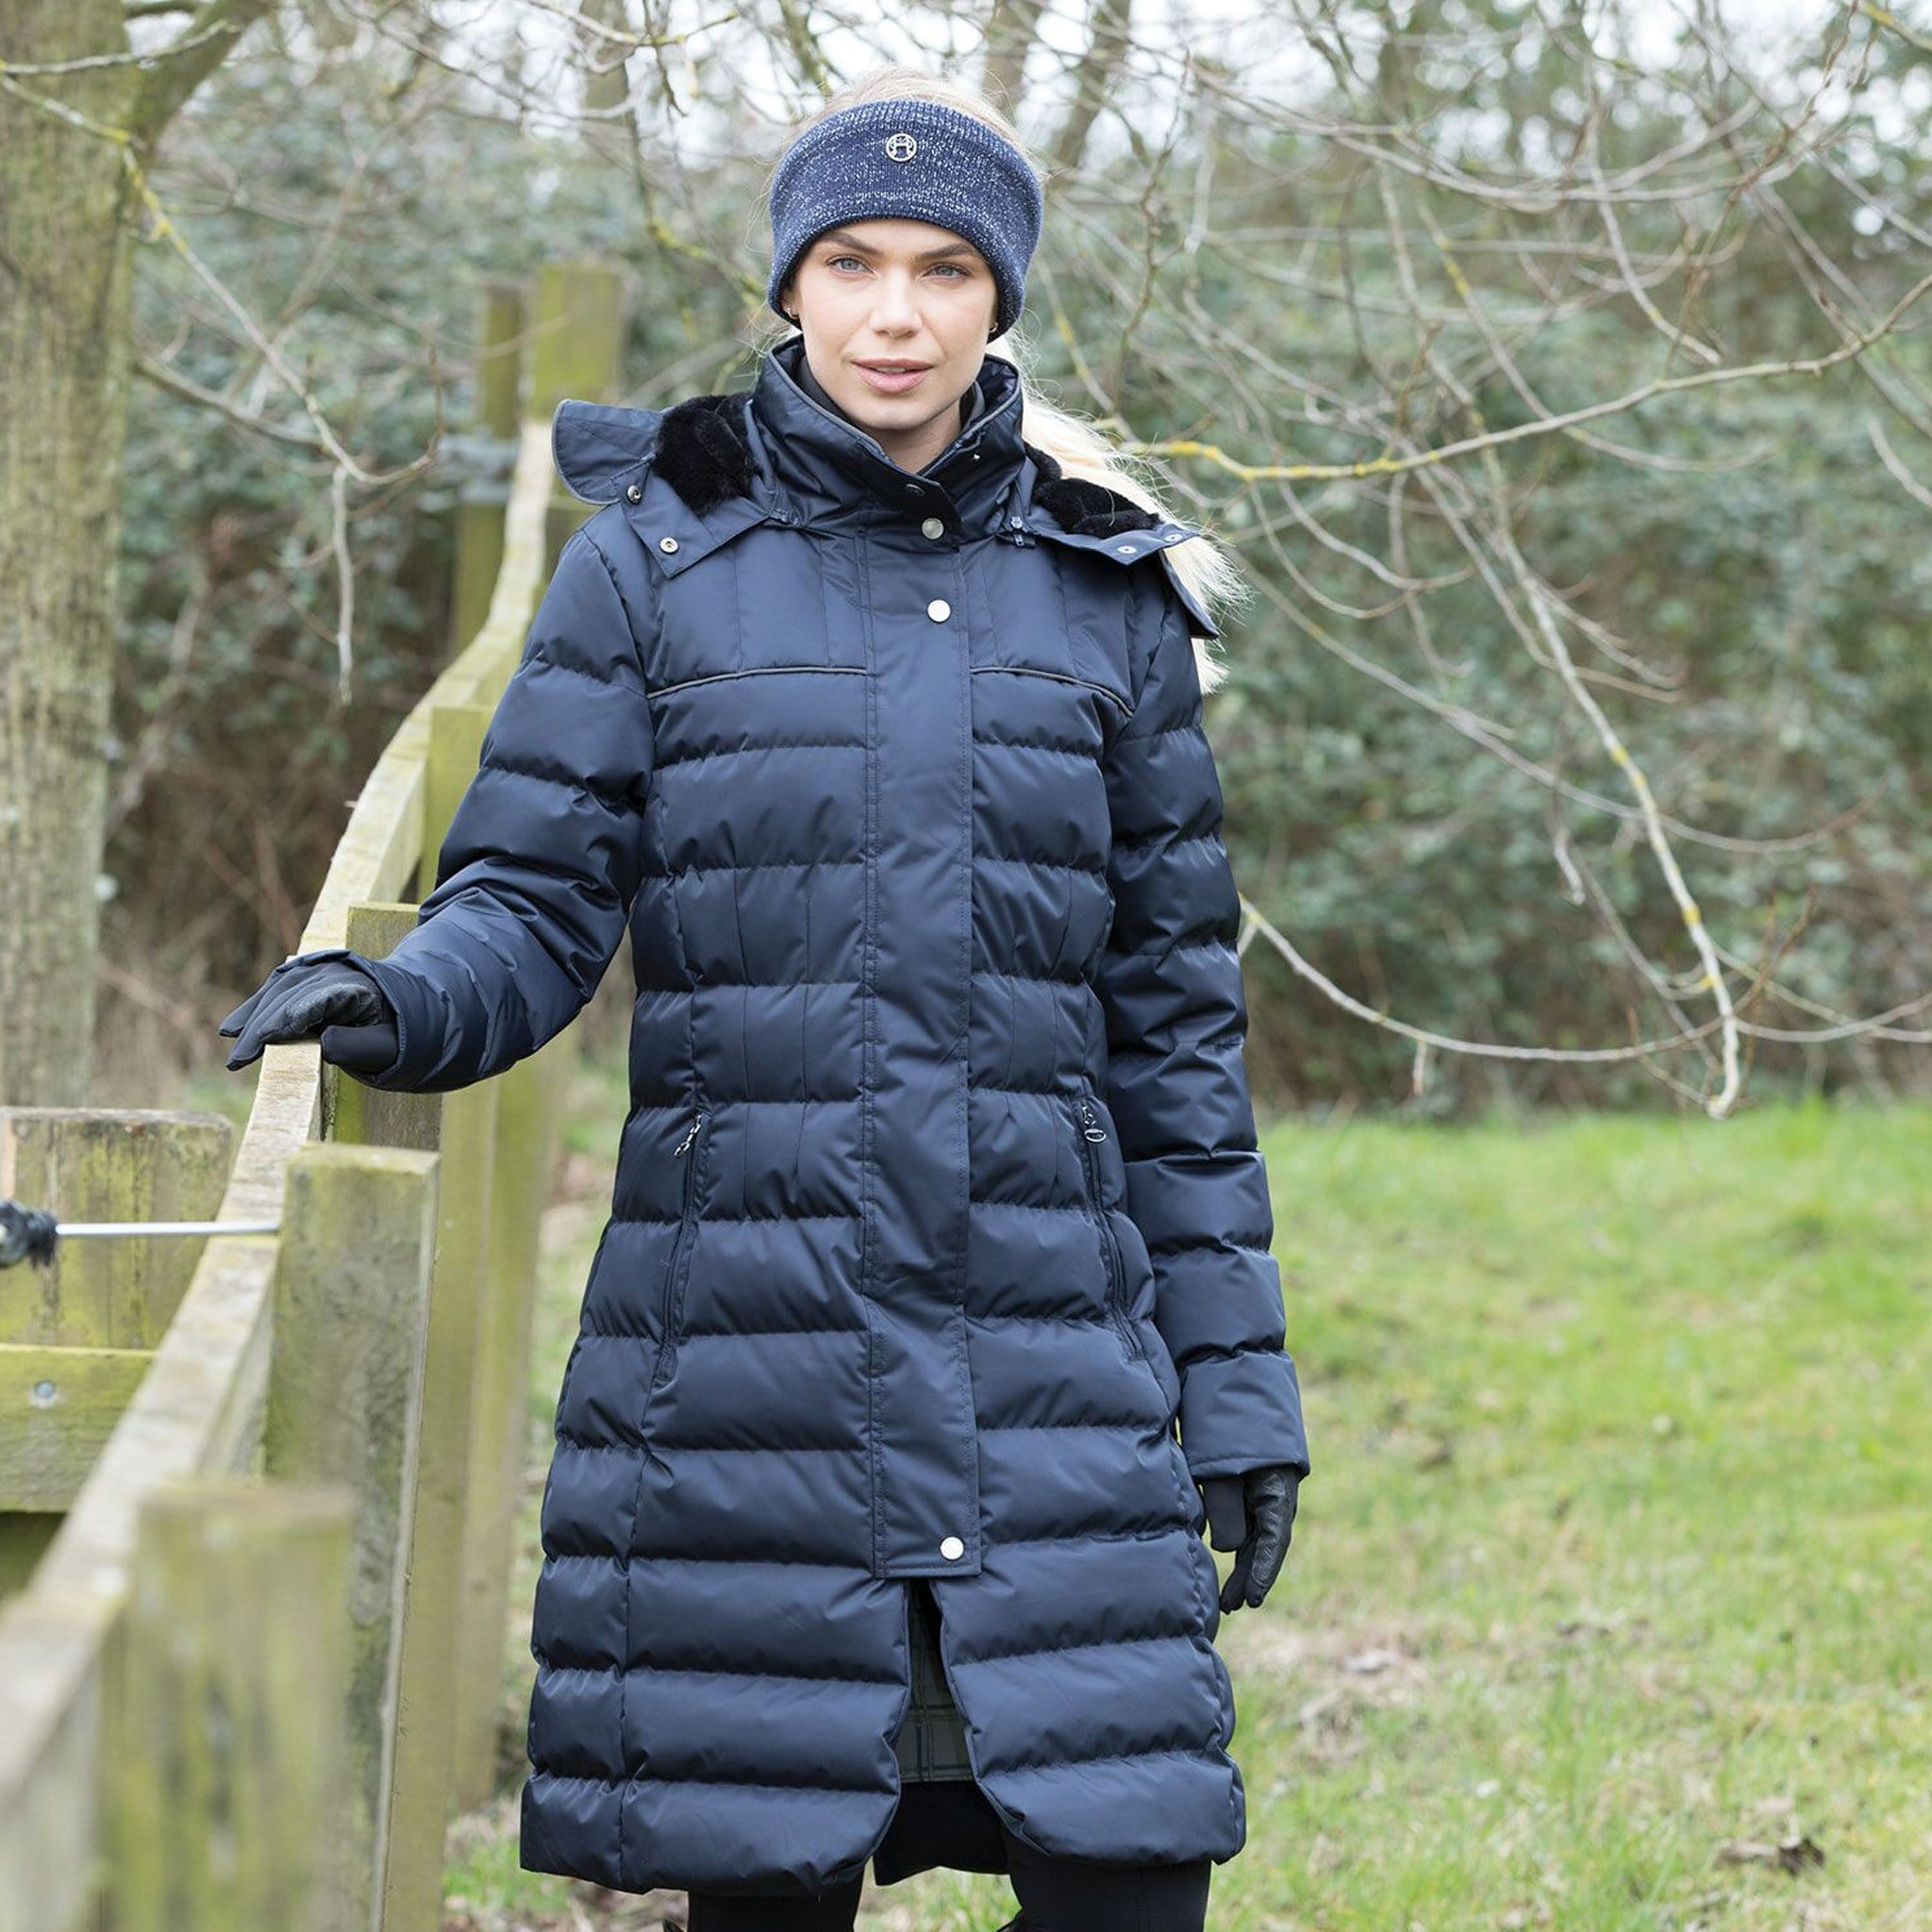 Equetech Alpha Long Padded Riding Coat APC Navy Front On Model By Fence